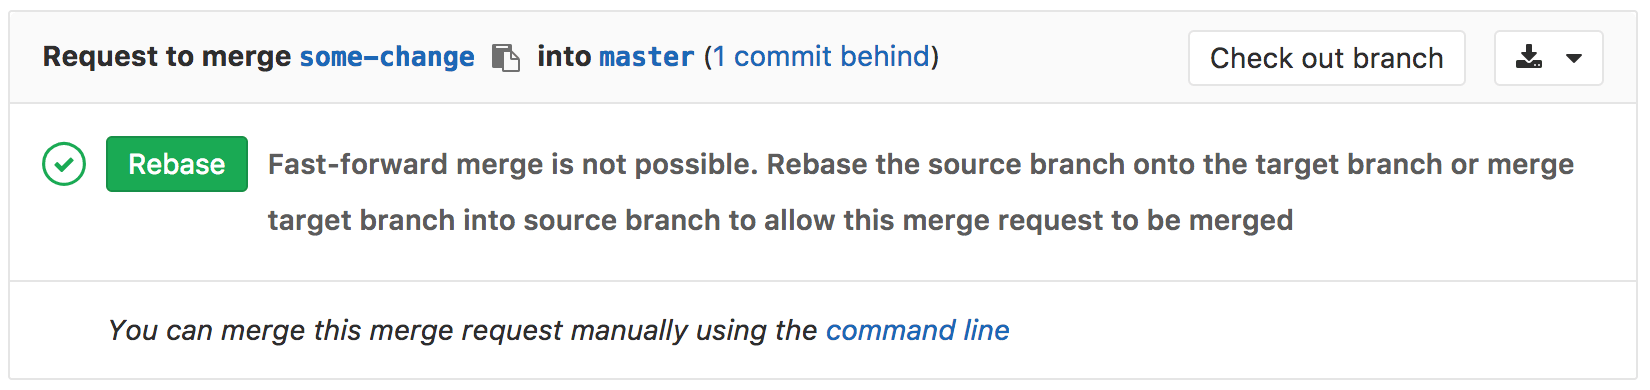 doc/user/project/merge_requests/img/ff_merge_rebase.png